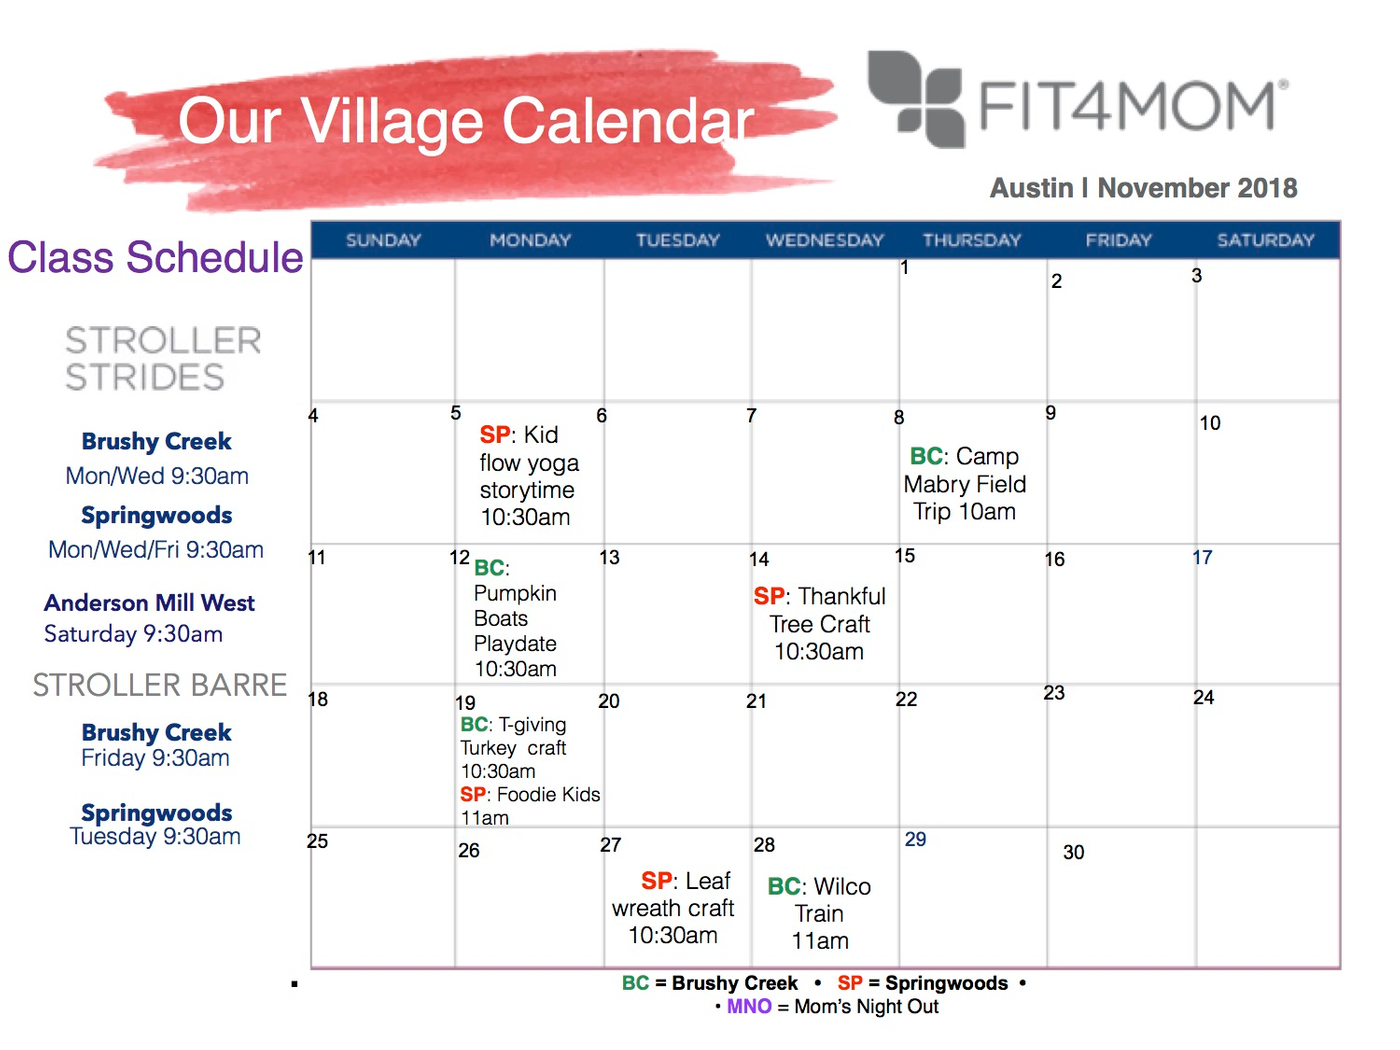 North Village Calendar.jpg